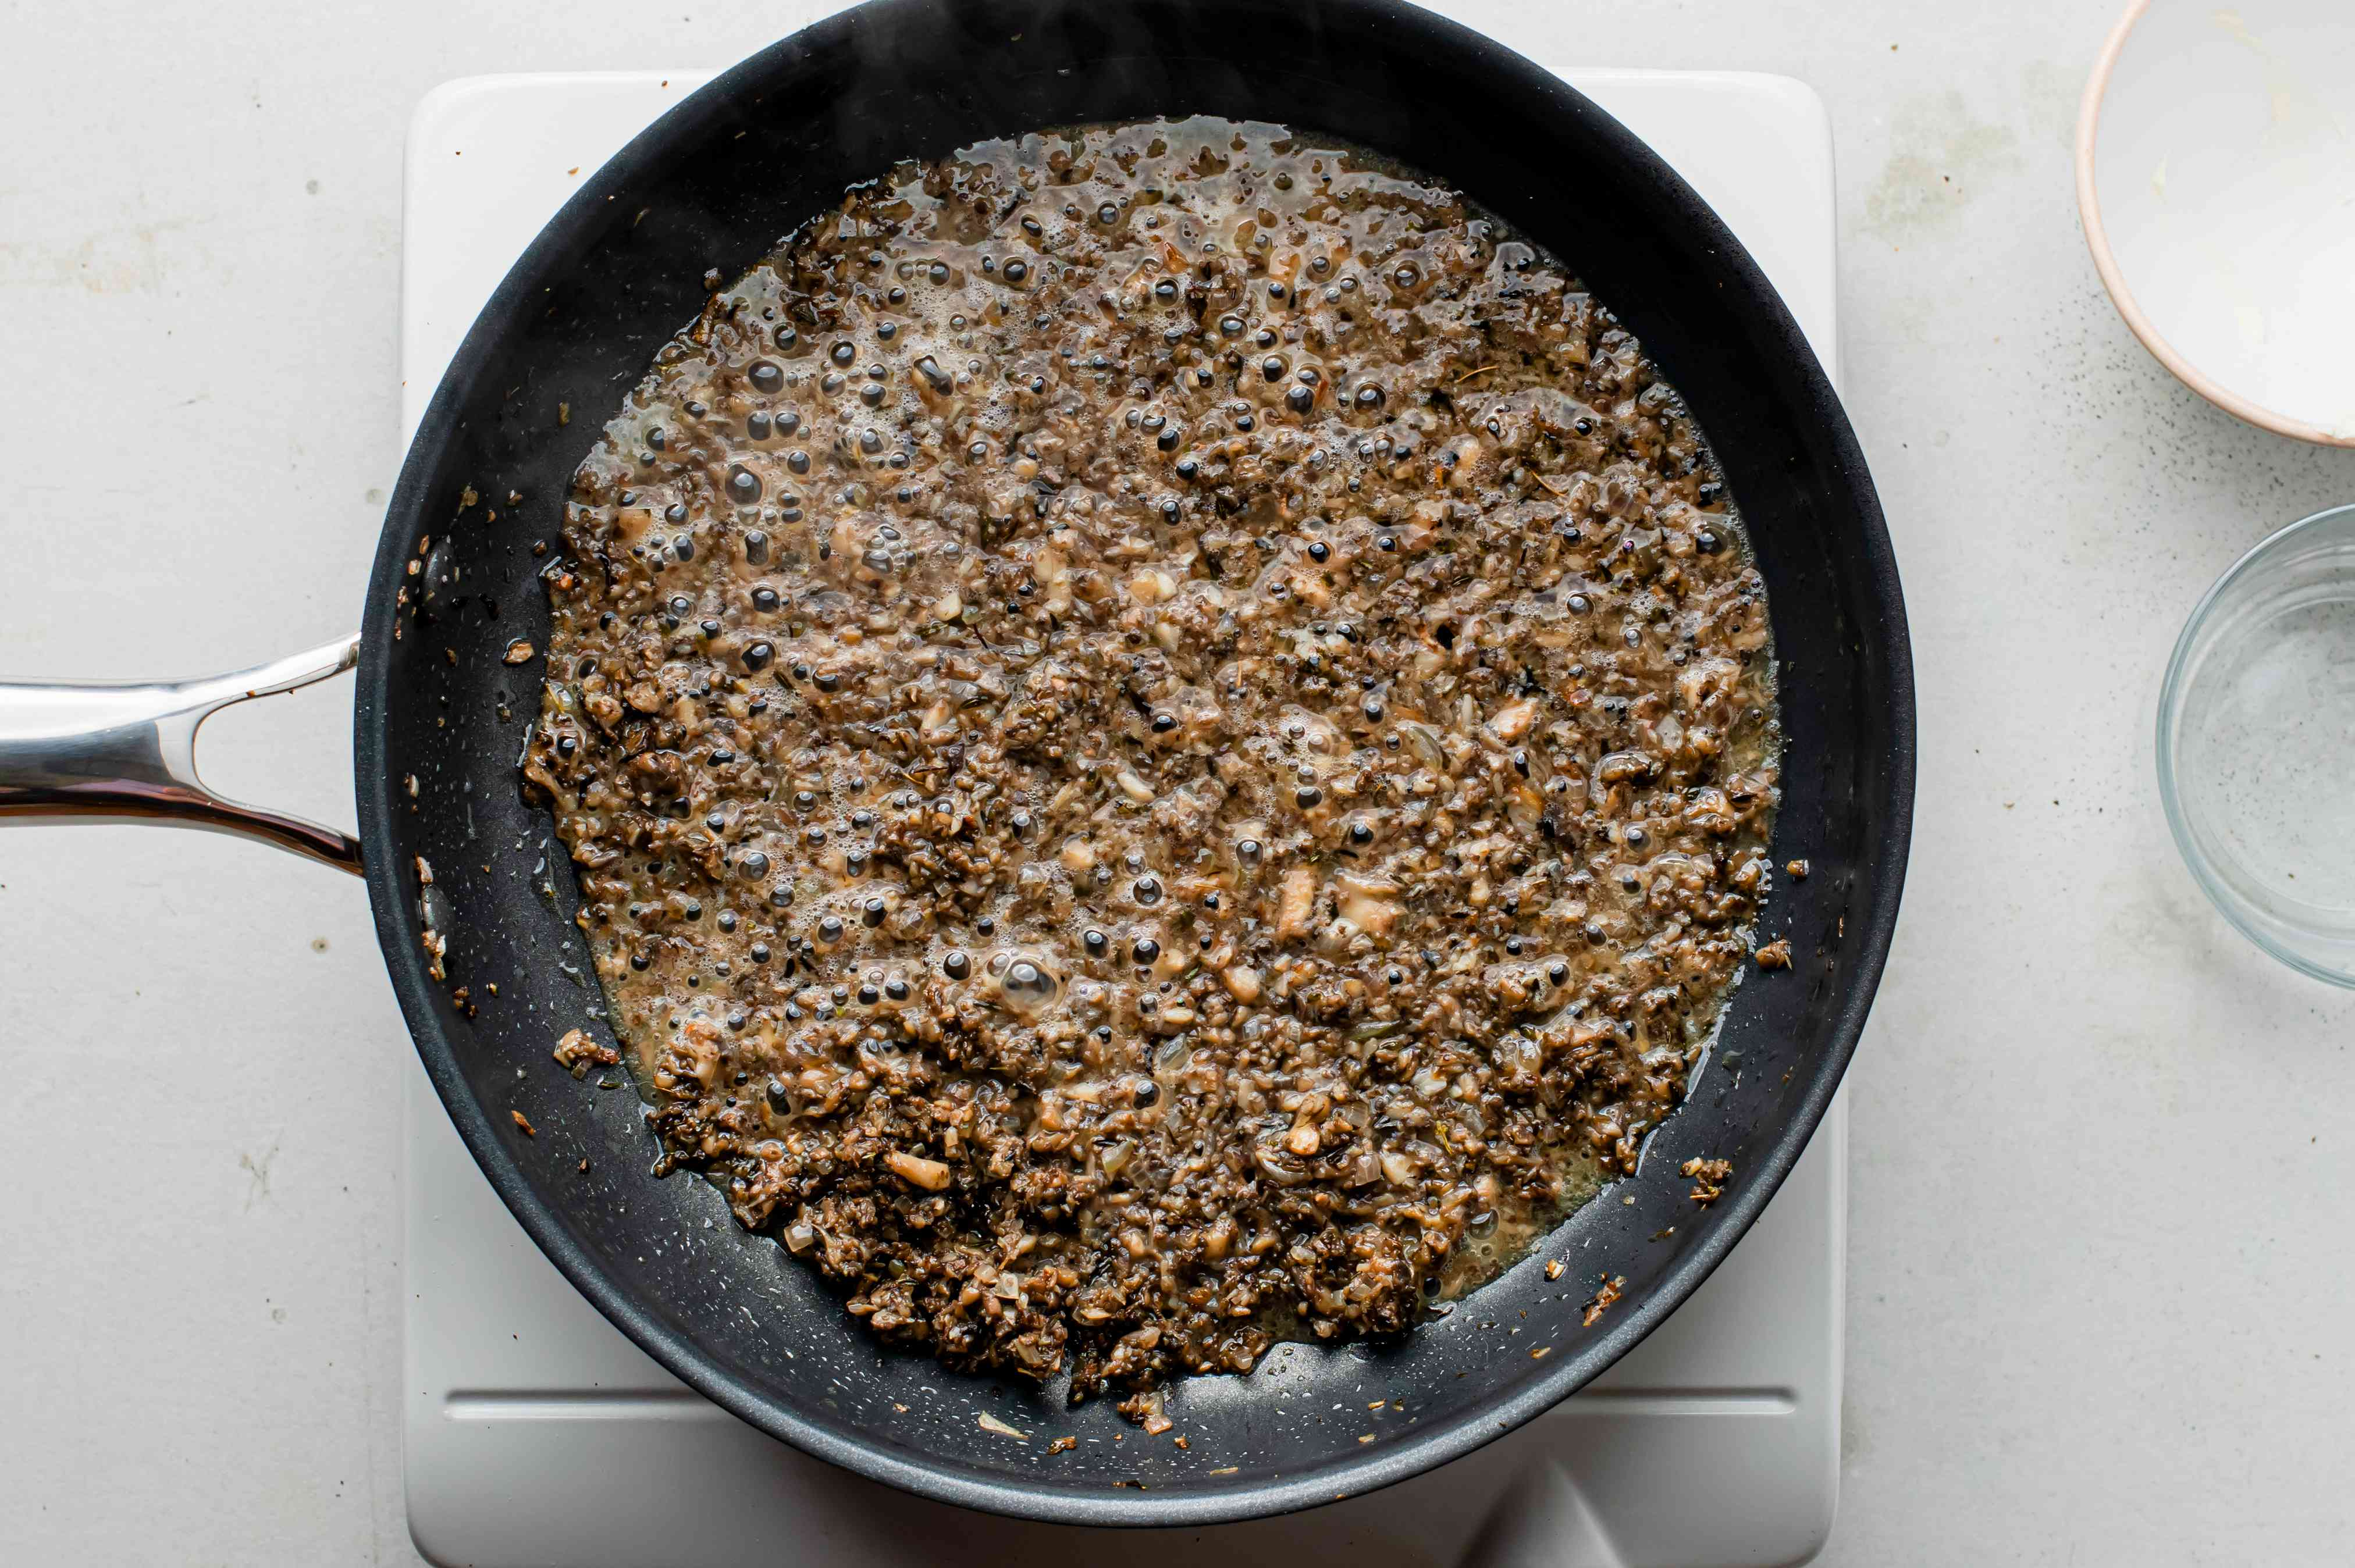 Mushroom mixture cooking in vermouth, in a black nonstick pan